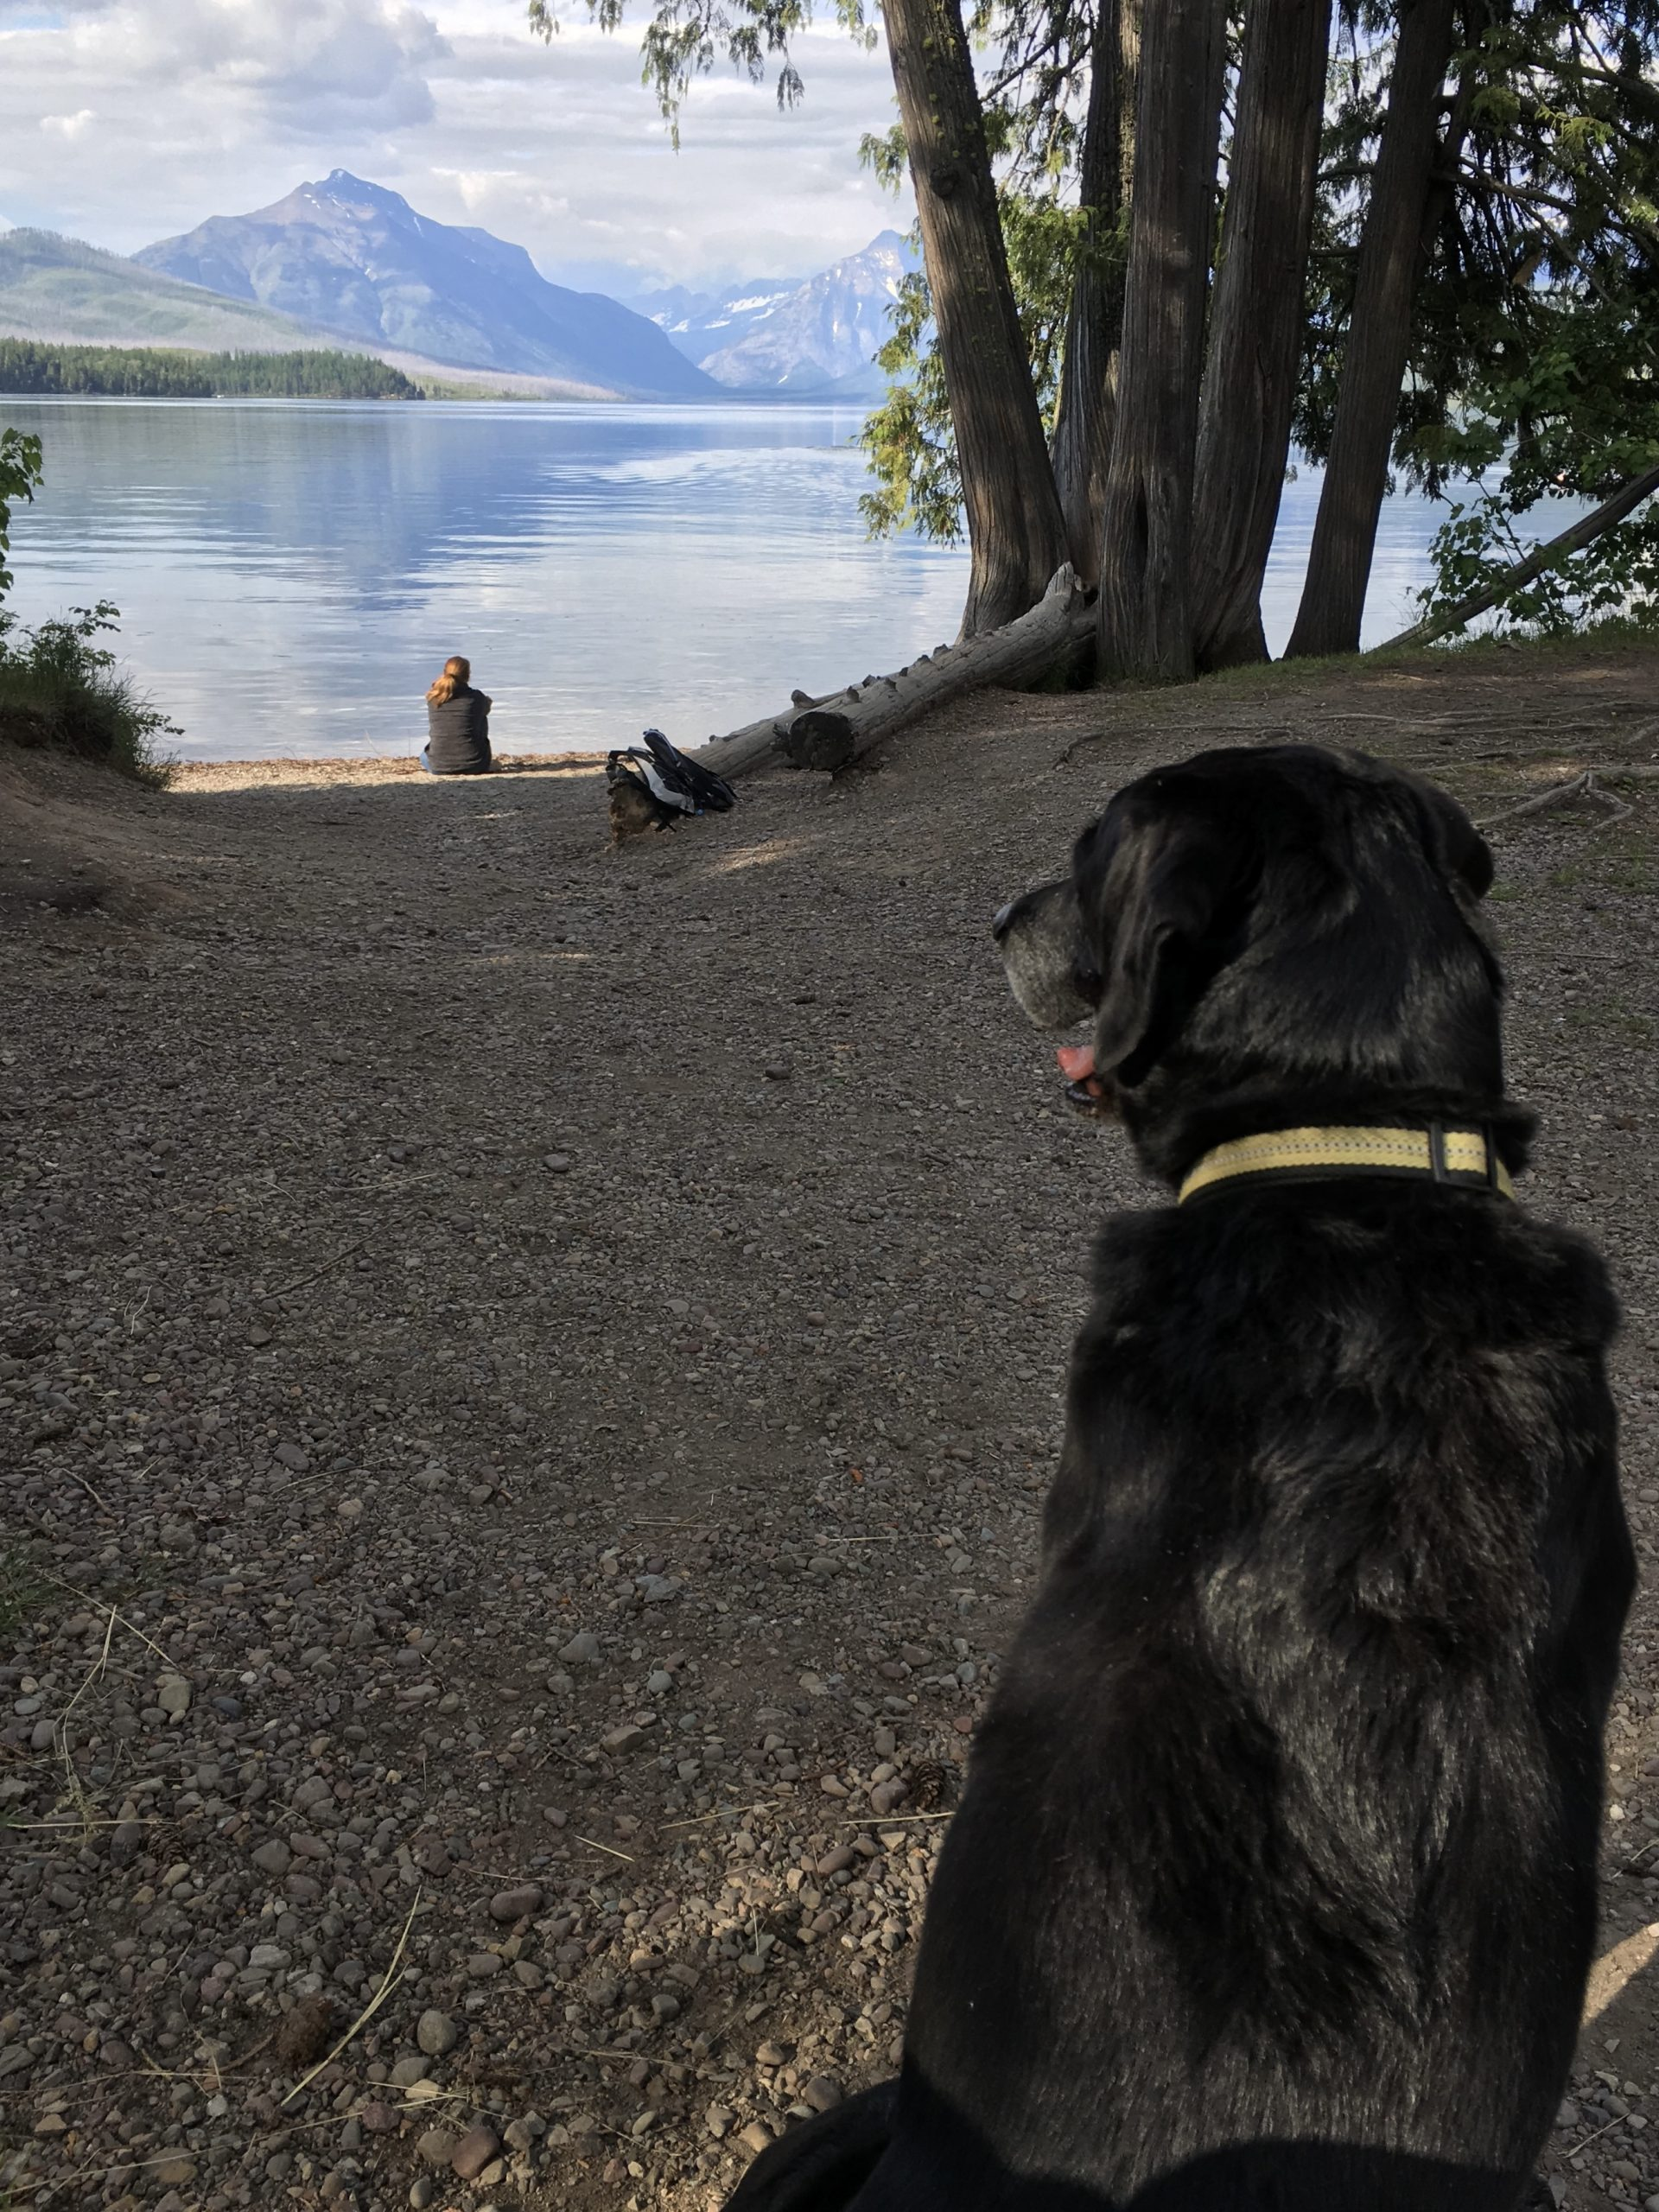 dogs can visit national parks